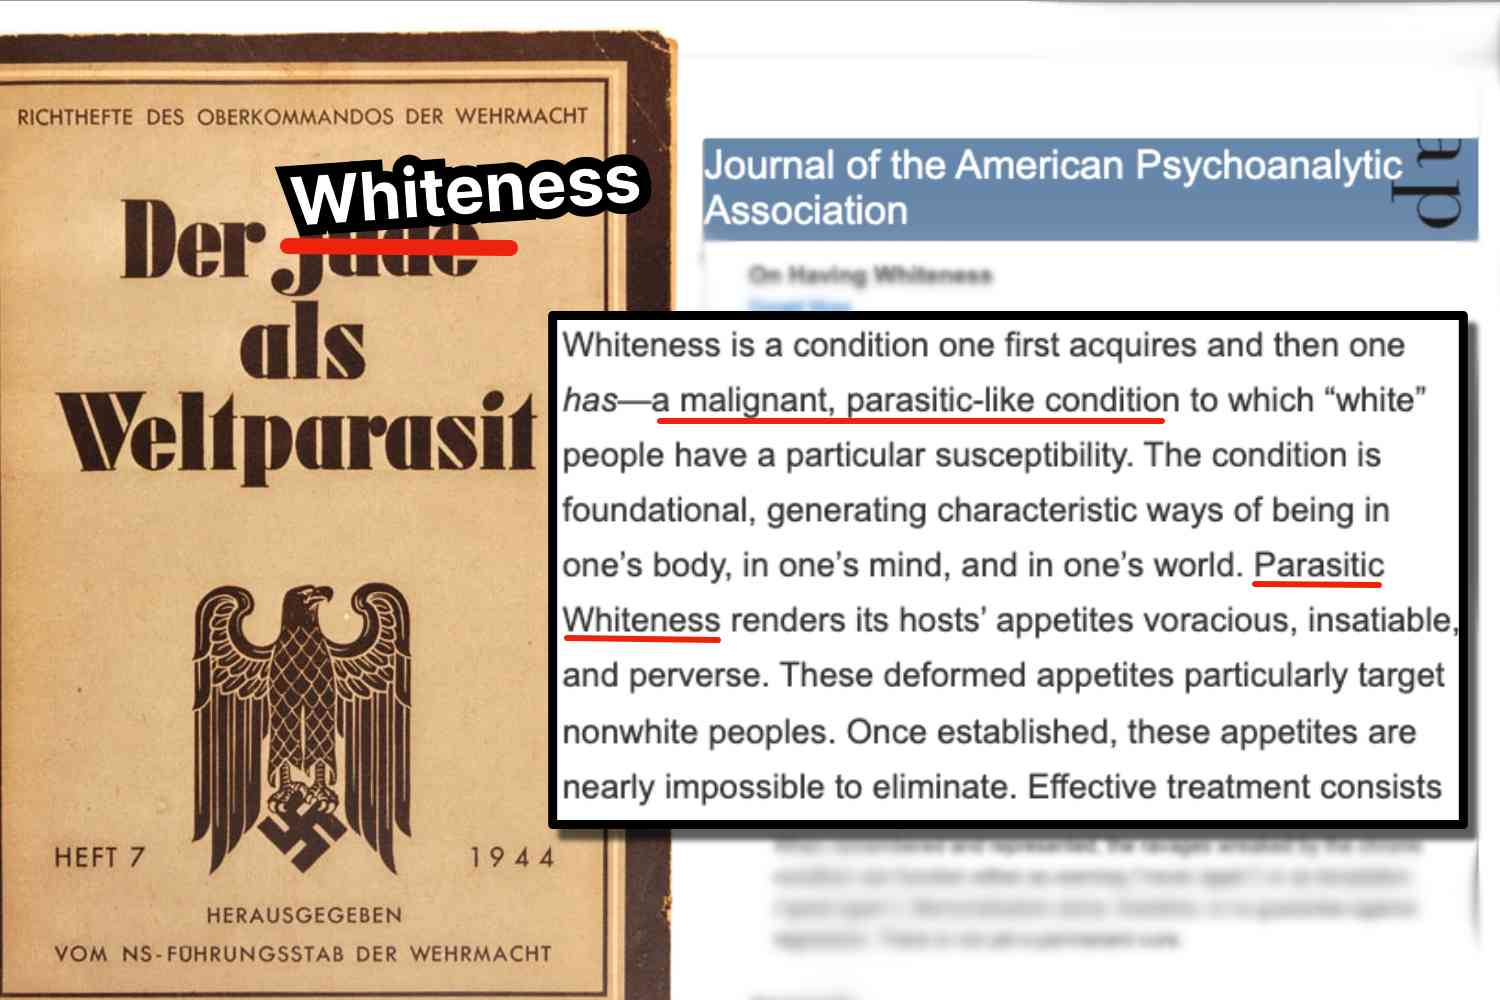 """Whiteness is a """"parasitic condition"""" that has no """"permanent cure,"""" according to a new paper in the Journal of the American Psychoanalytic Association"""